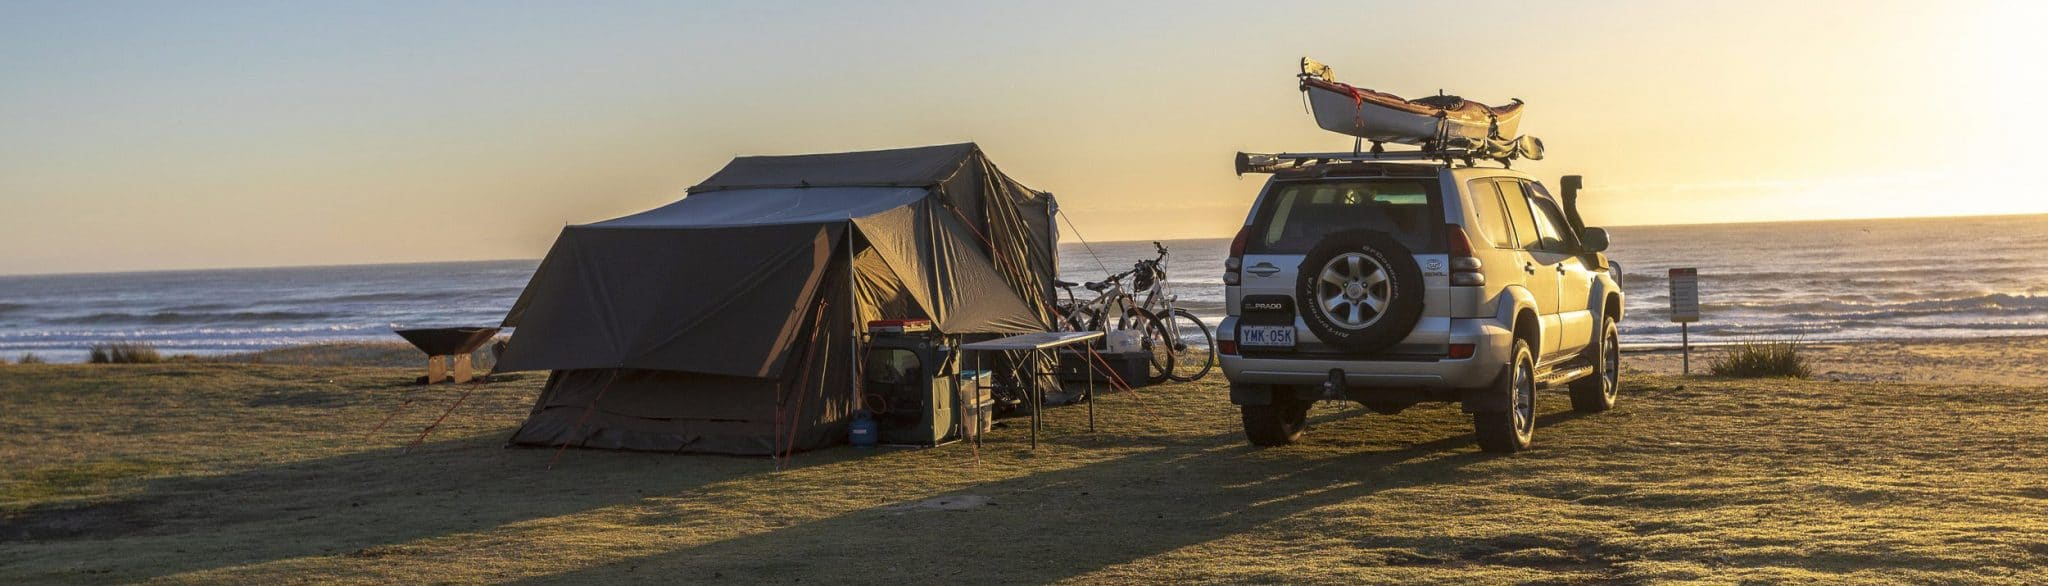 Camping by the beach